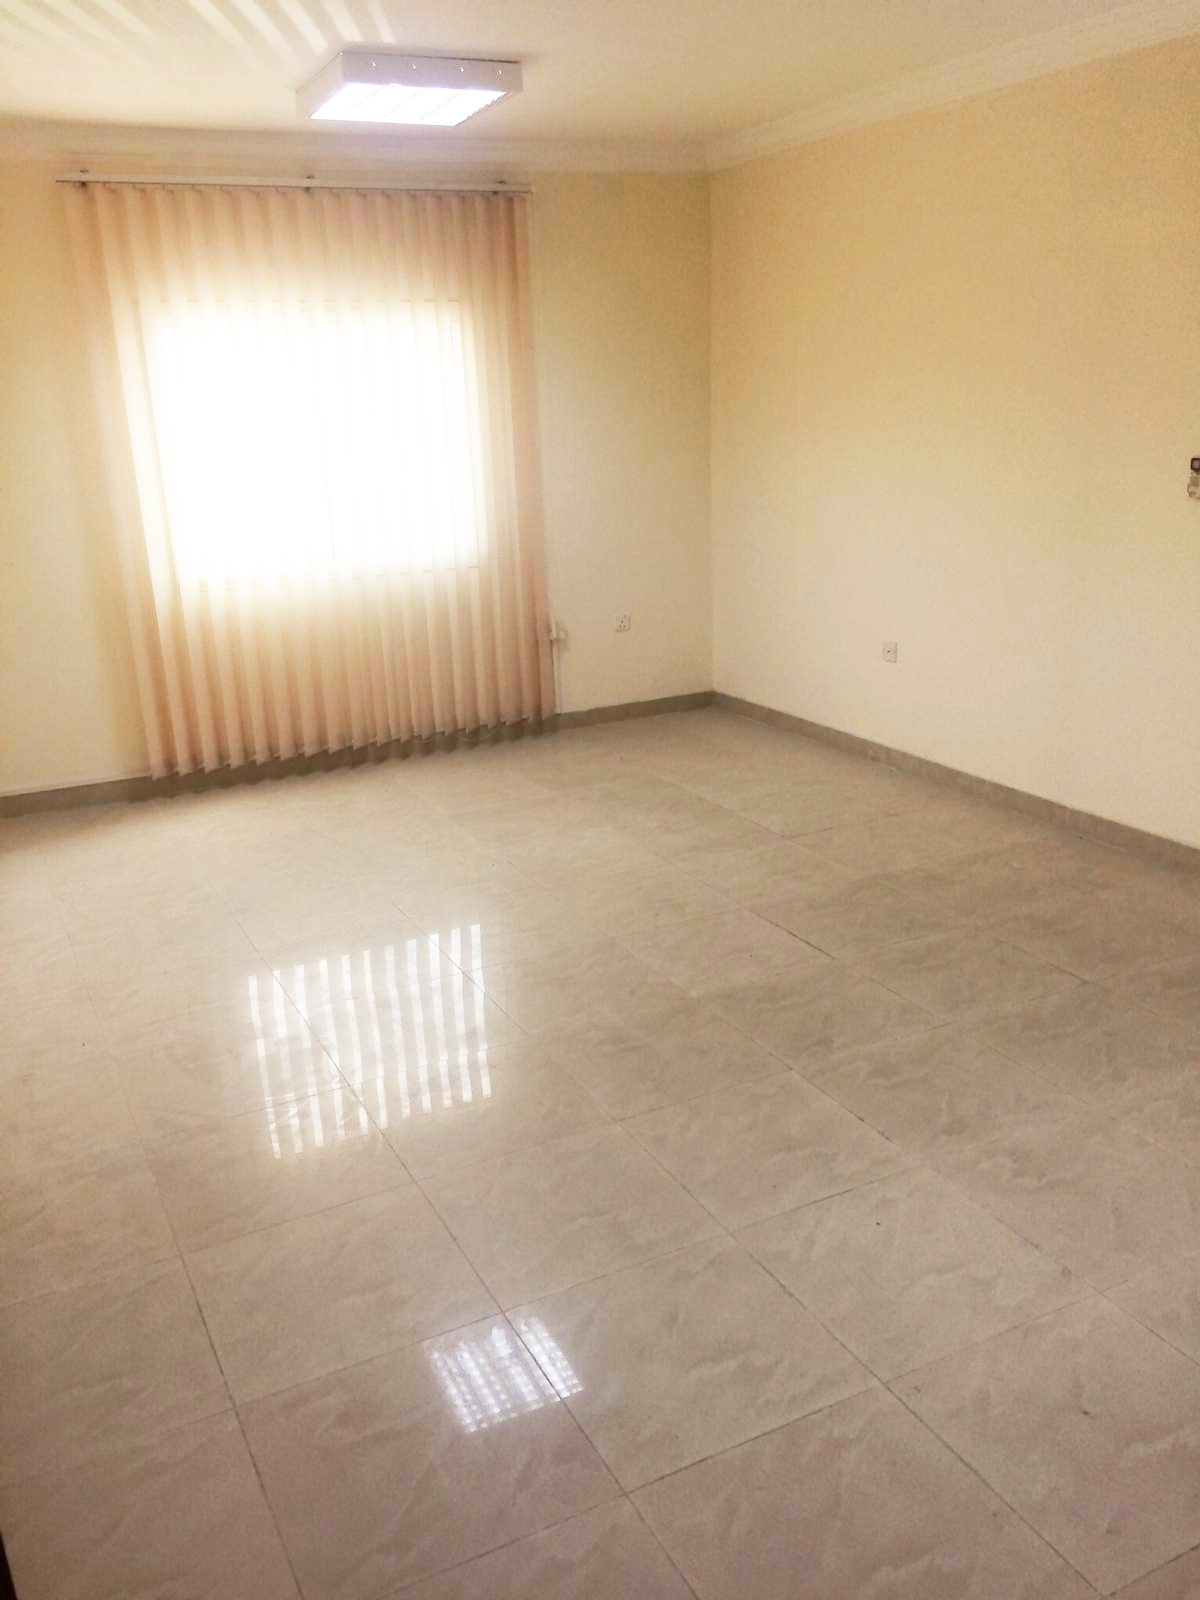 [1-Month free] Unfurnished, 2-Room Office Space in Al Rayyan